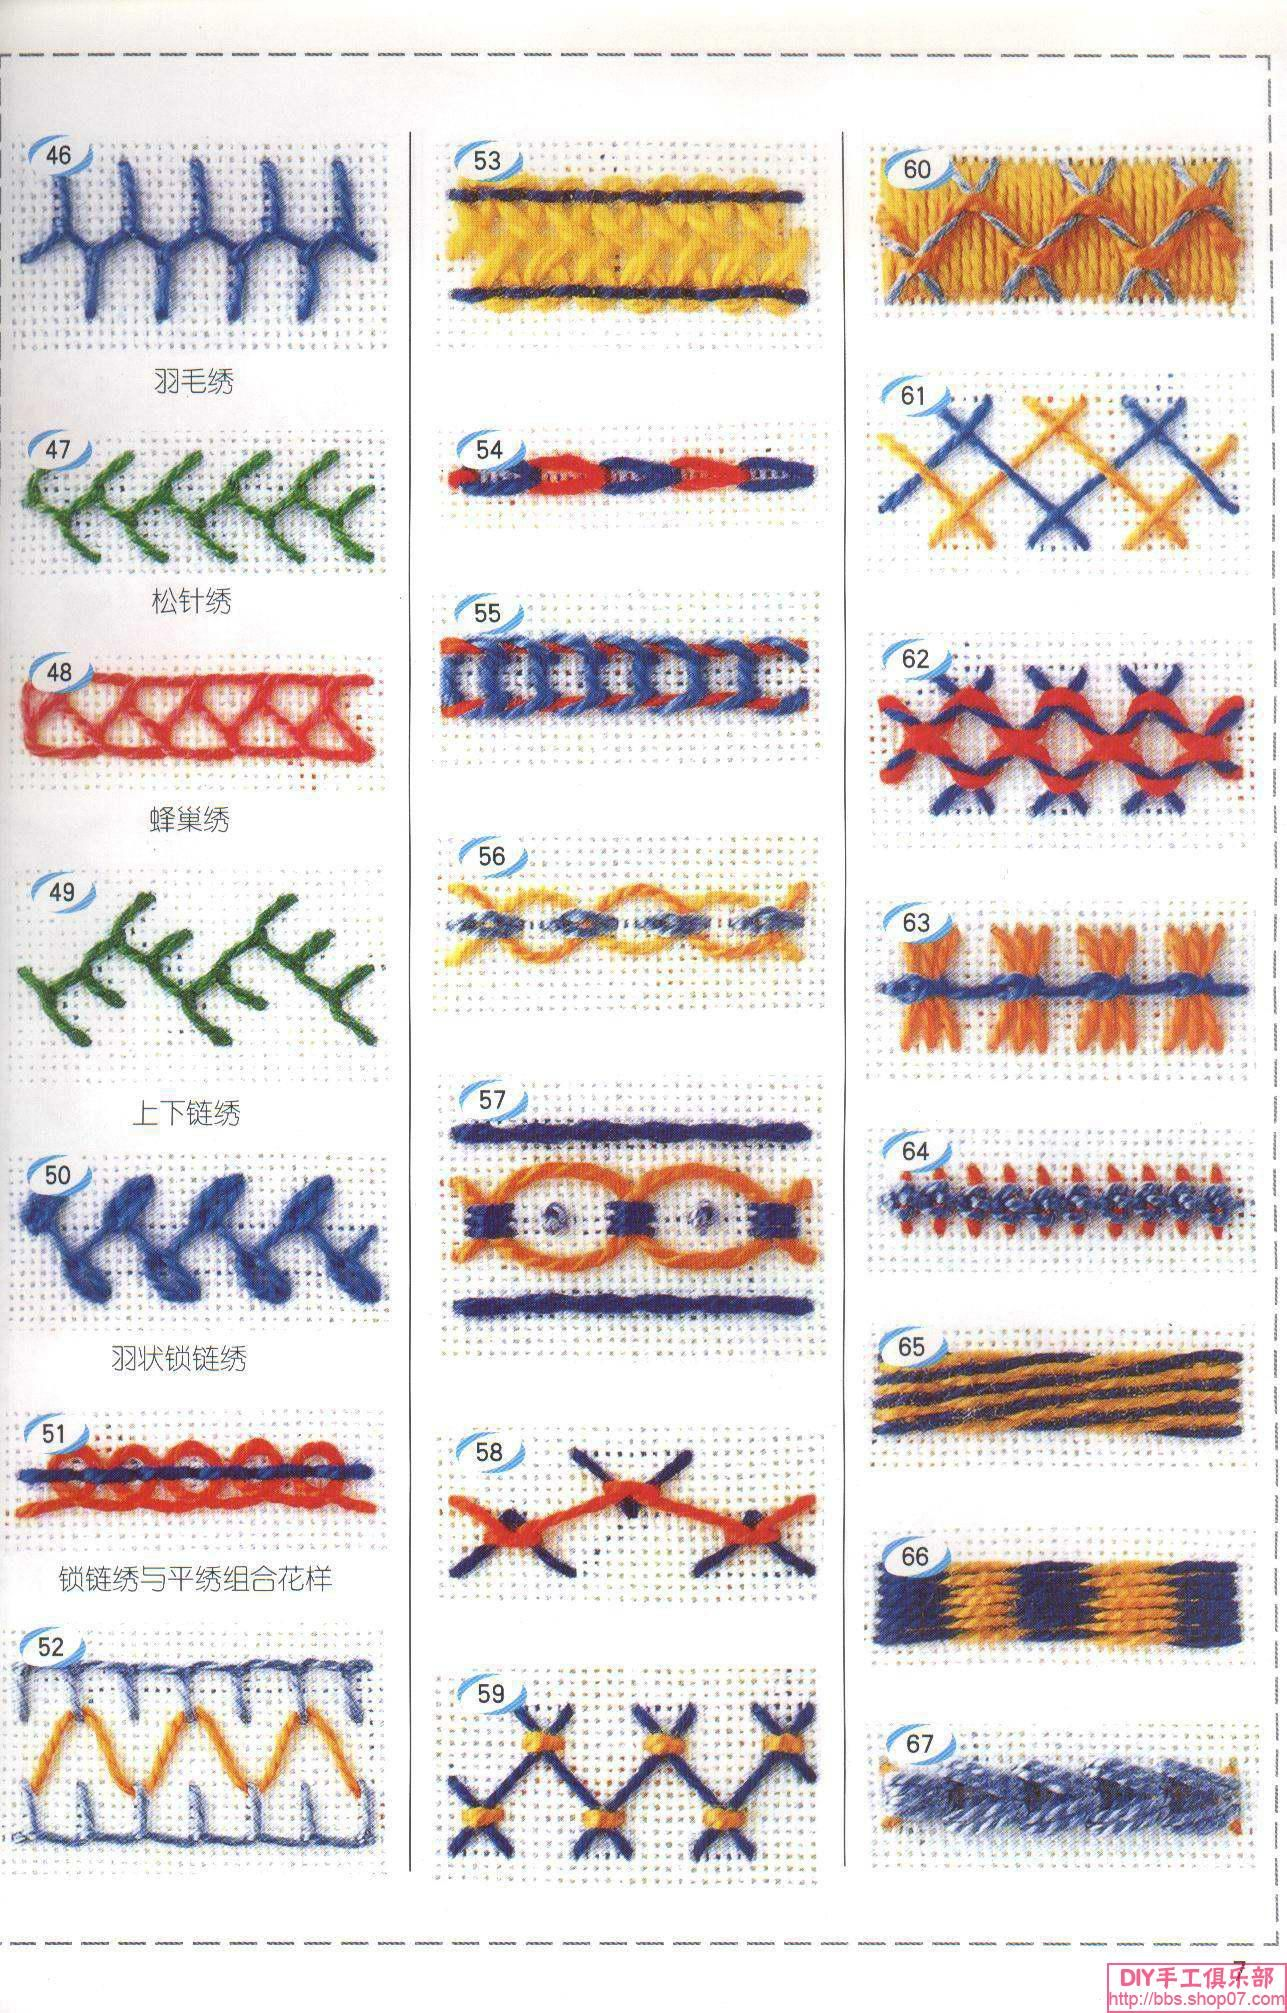 Embroidery Stitches. | Bordados | Pinterest | Embroidery Stitches Embroidery And Stitch